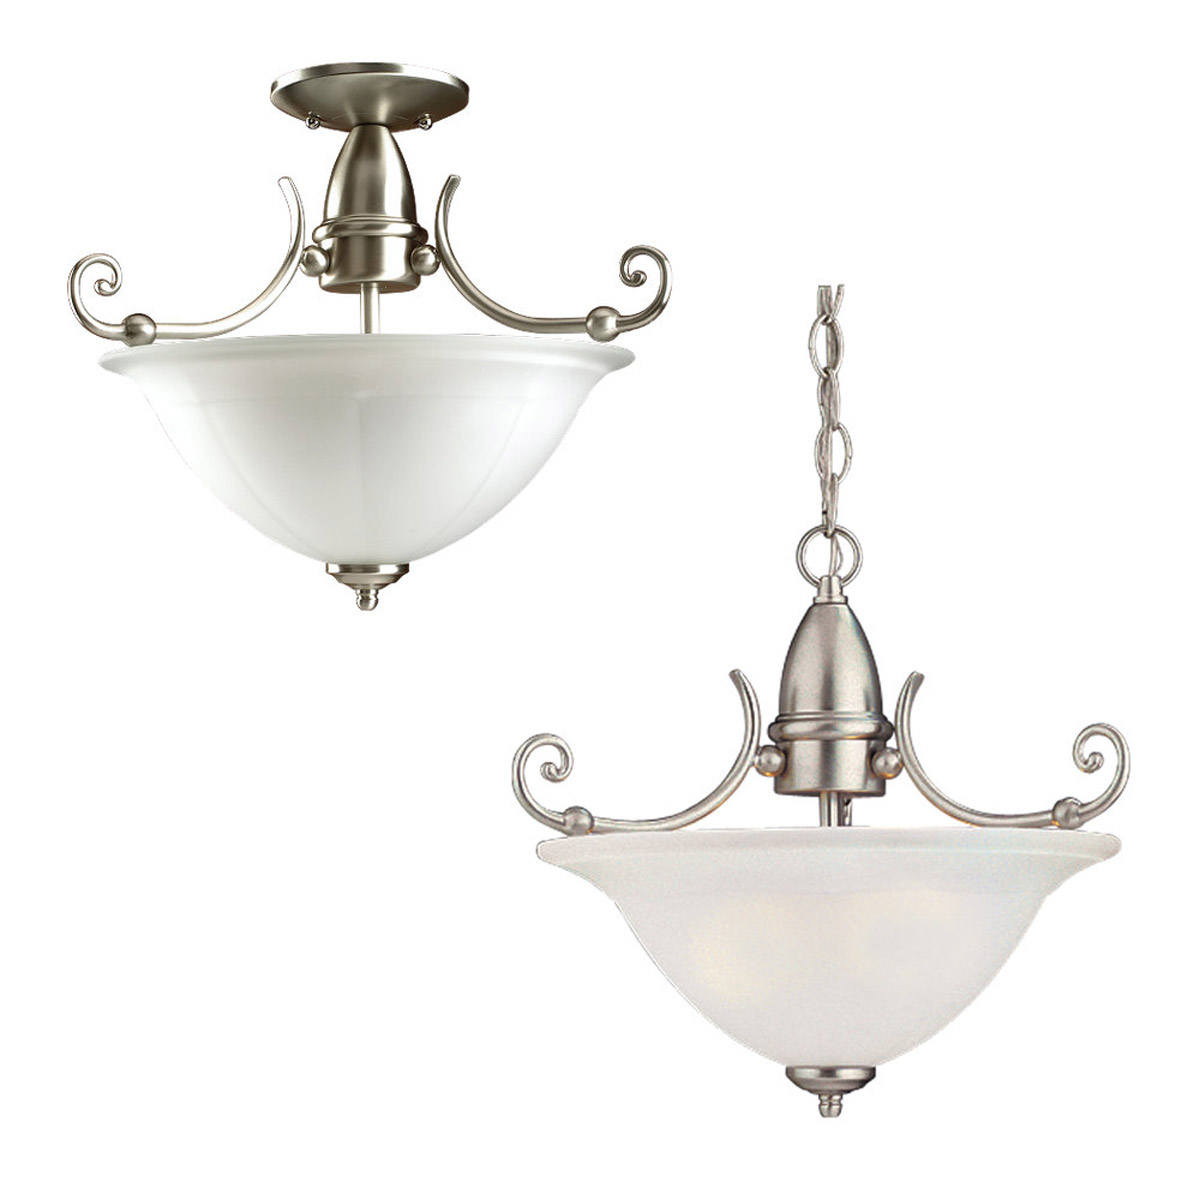 Sea Gull Lighting Canterbury 2 Light Pendant Convertible in Brushed Nickel 51050-962 photo